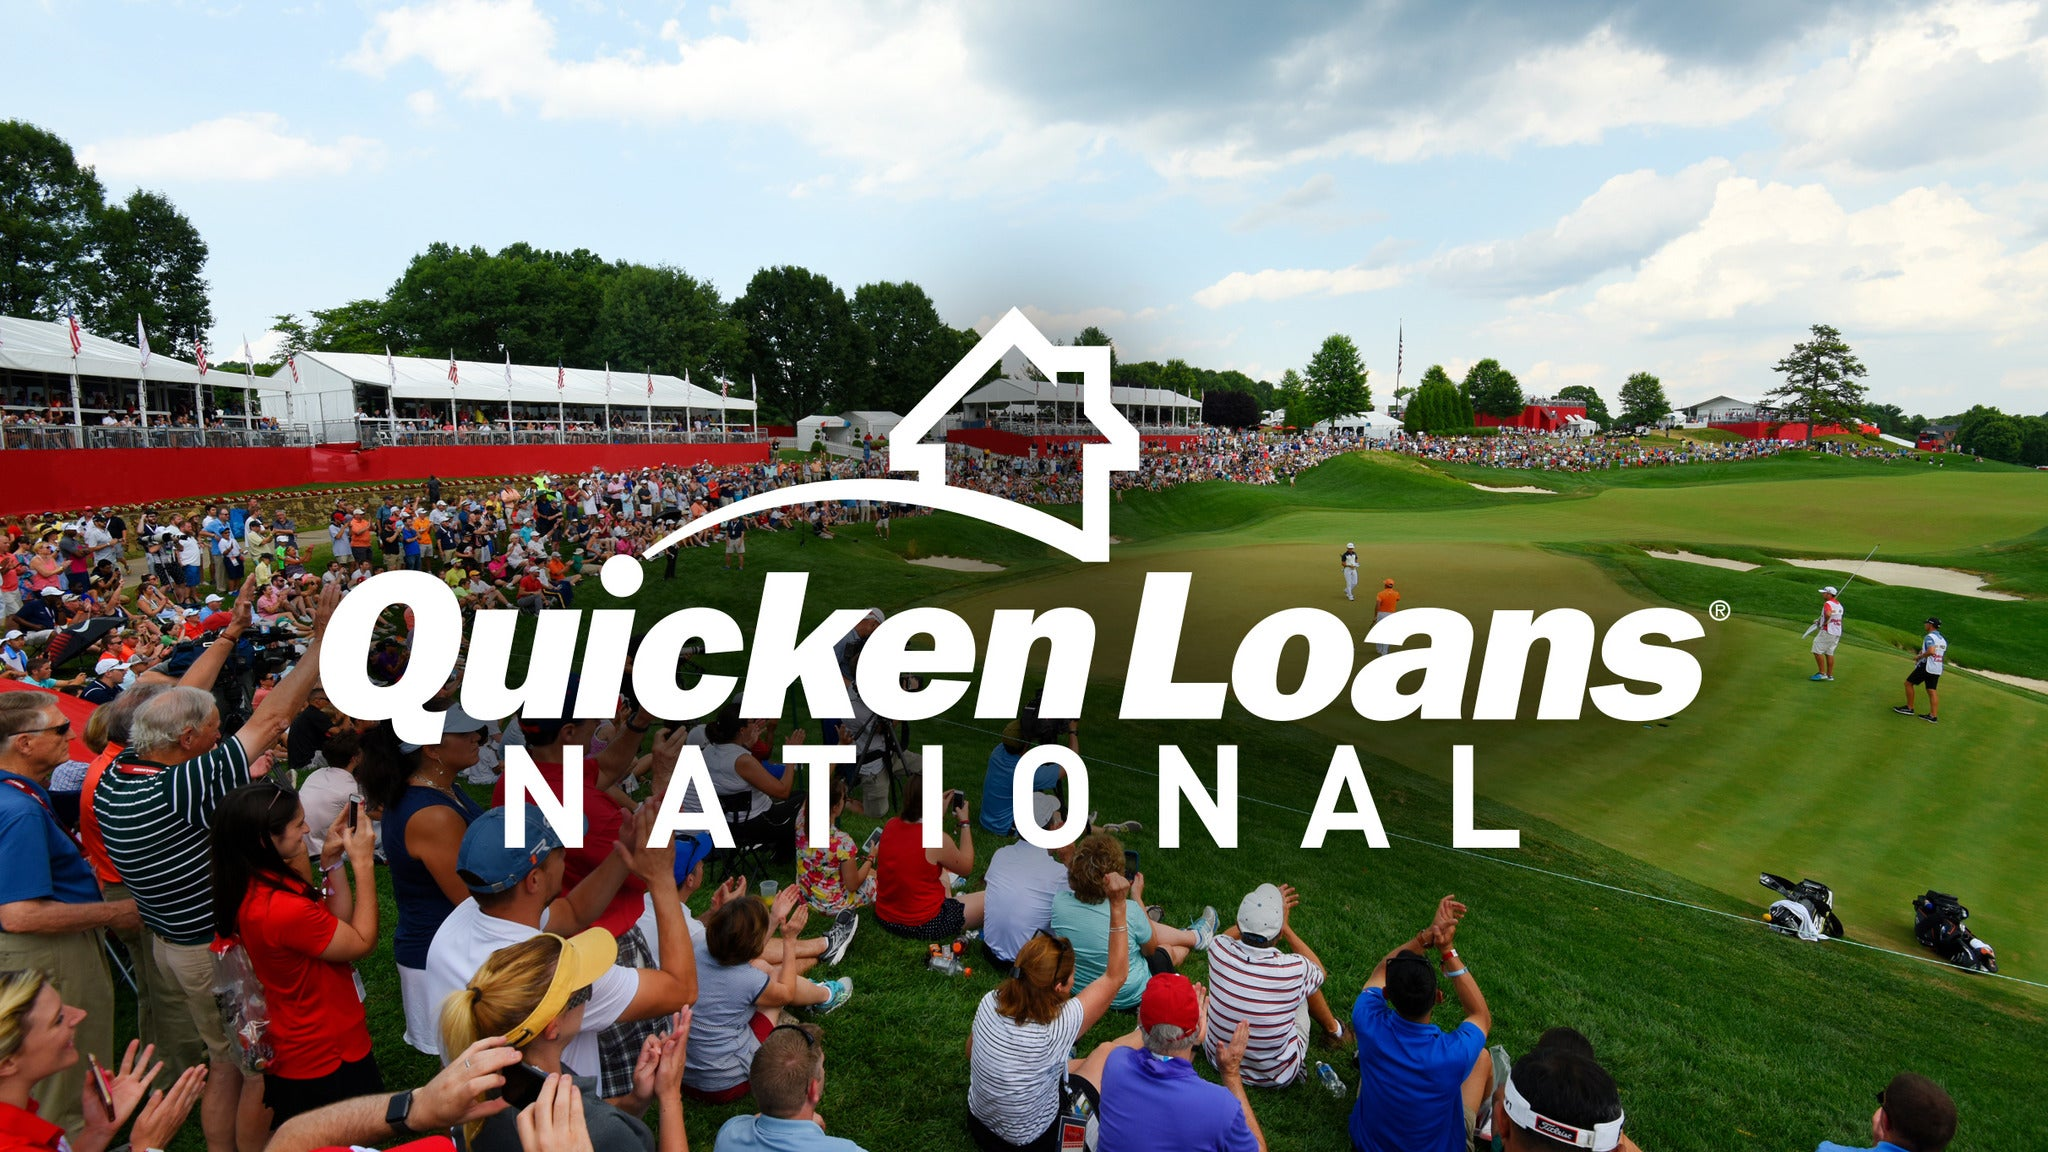 Quicken Loans National: Friday Admission